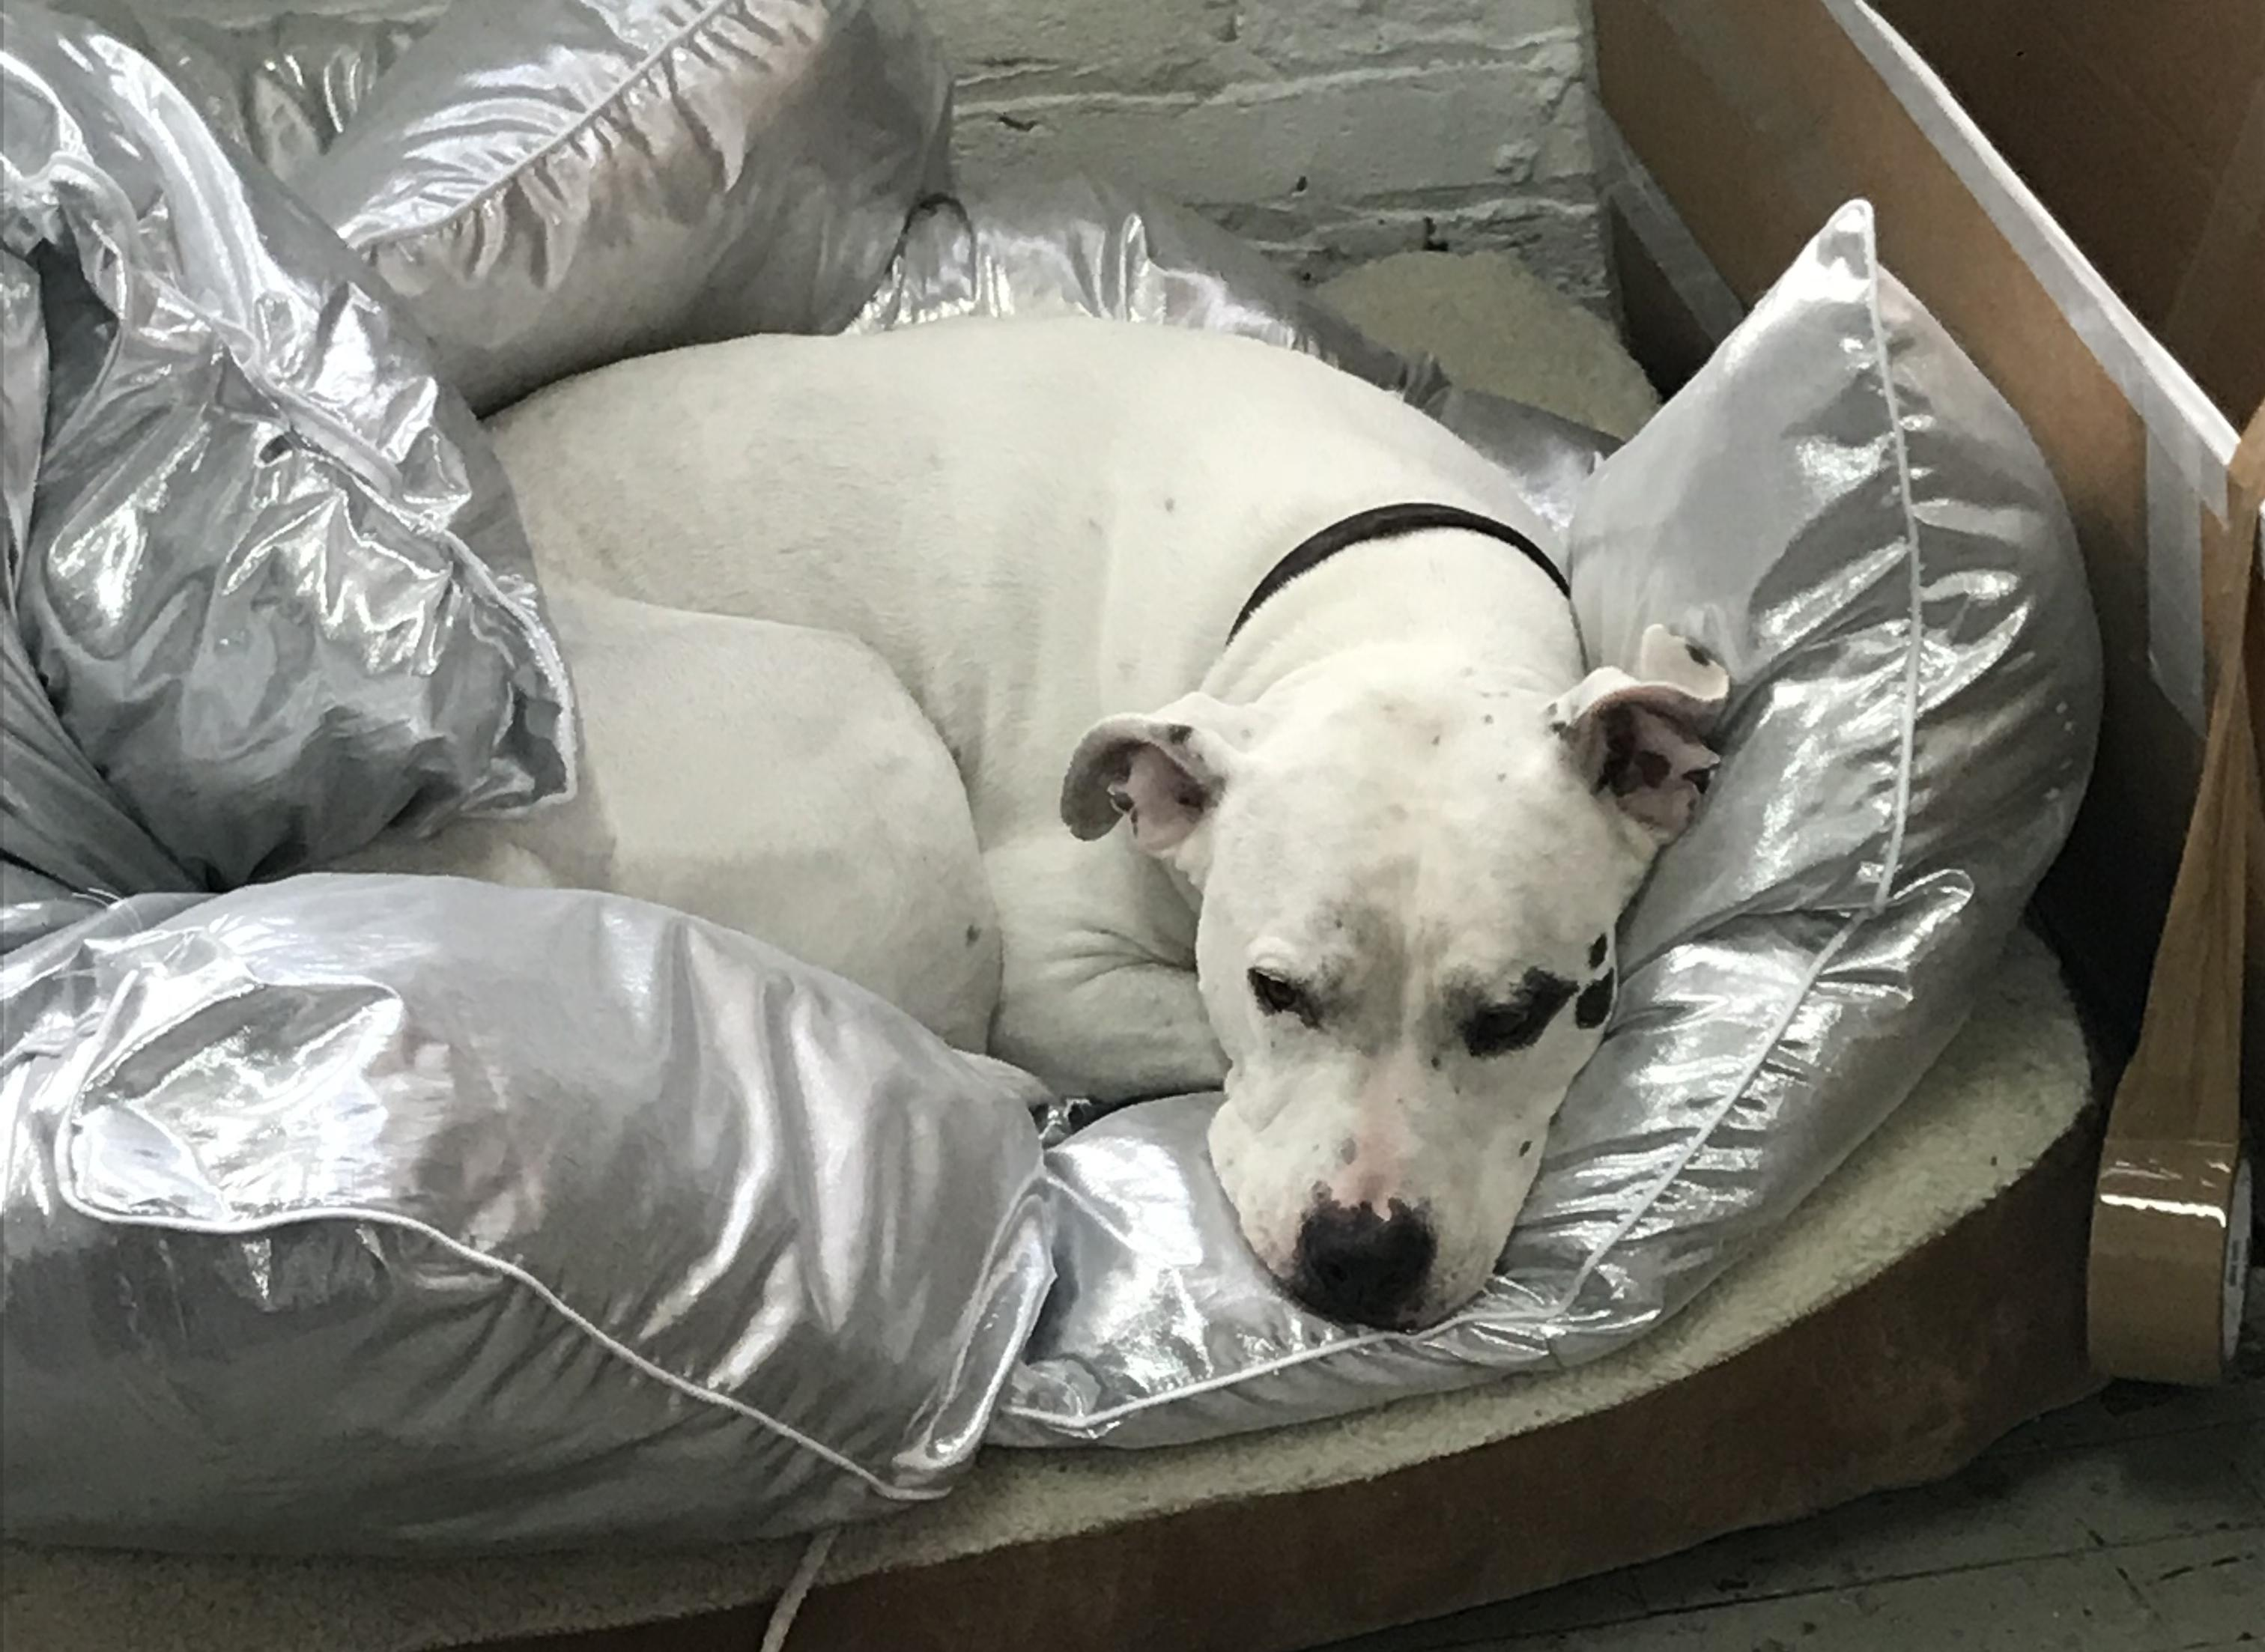 A white dog with black spots on its face rests on a puffy, metallic silver blanket.